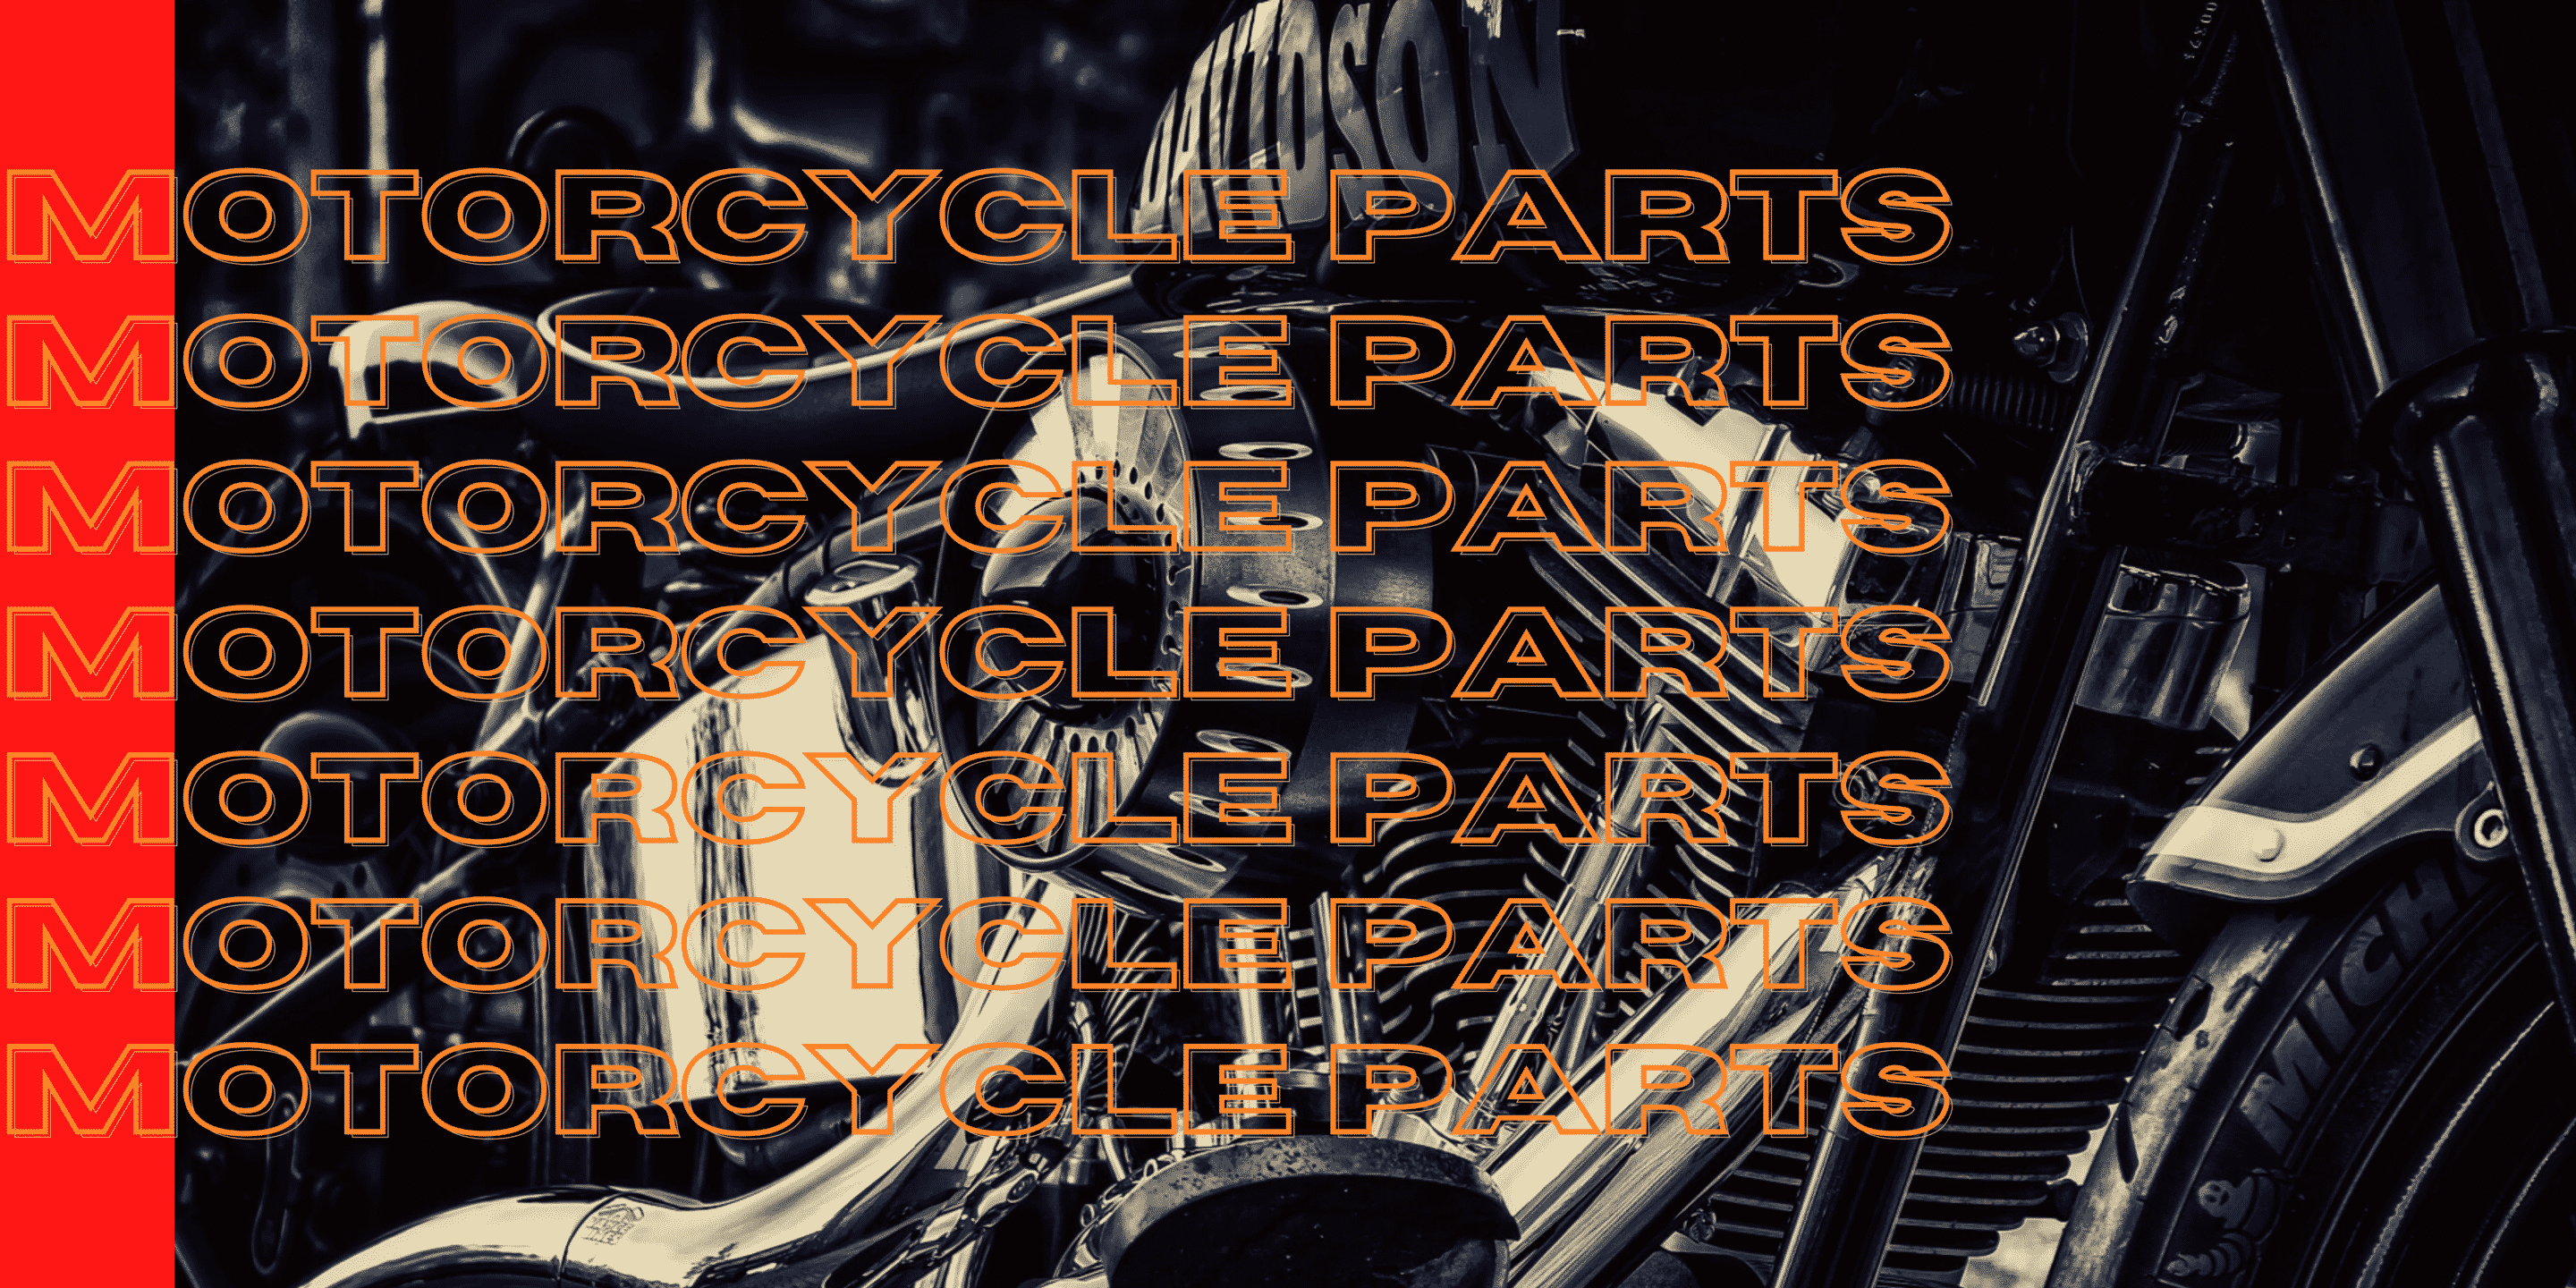 PerformanceGadgetStore.com Motorcycle Parts Webpage Banner